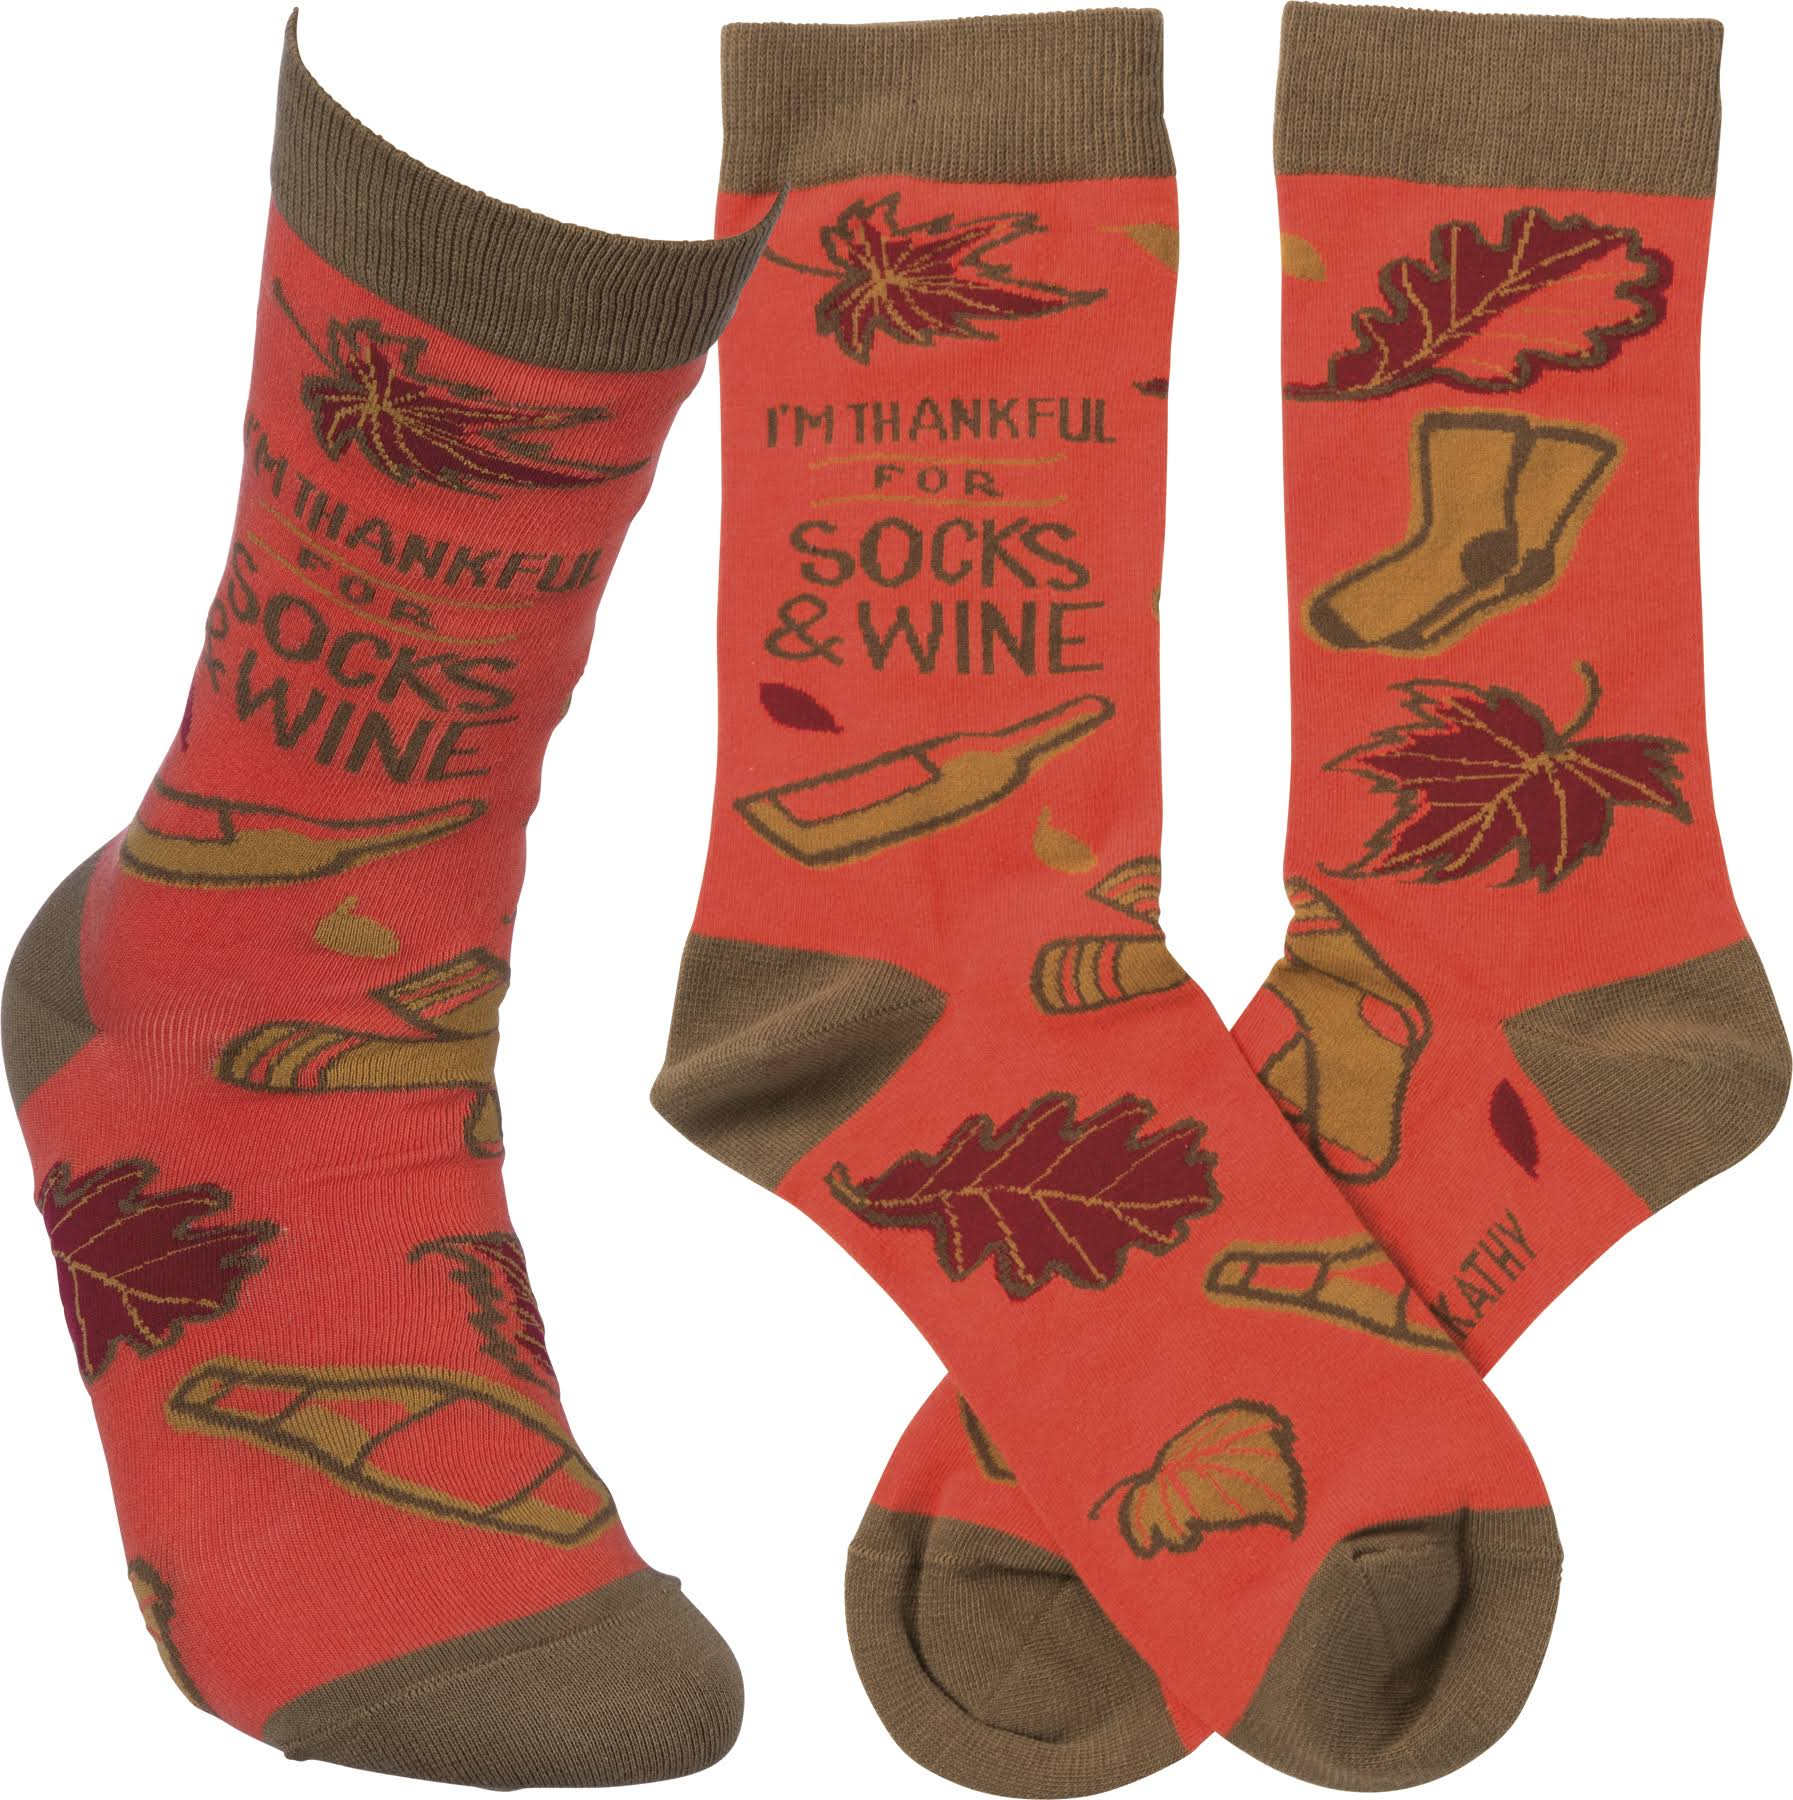 Primitives by Kathy Funny Novelty Socks - I'm Thankful for Socks and Wine, Women's, Size: One size, Red